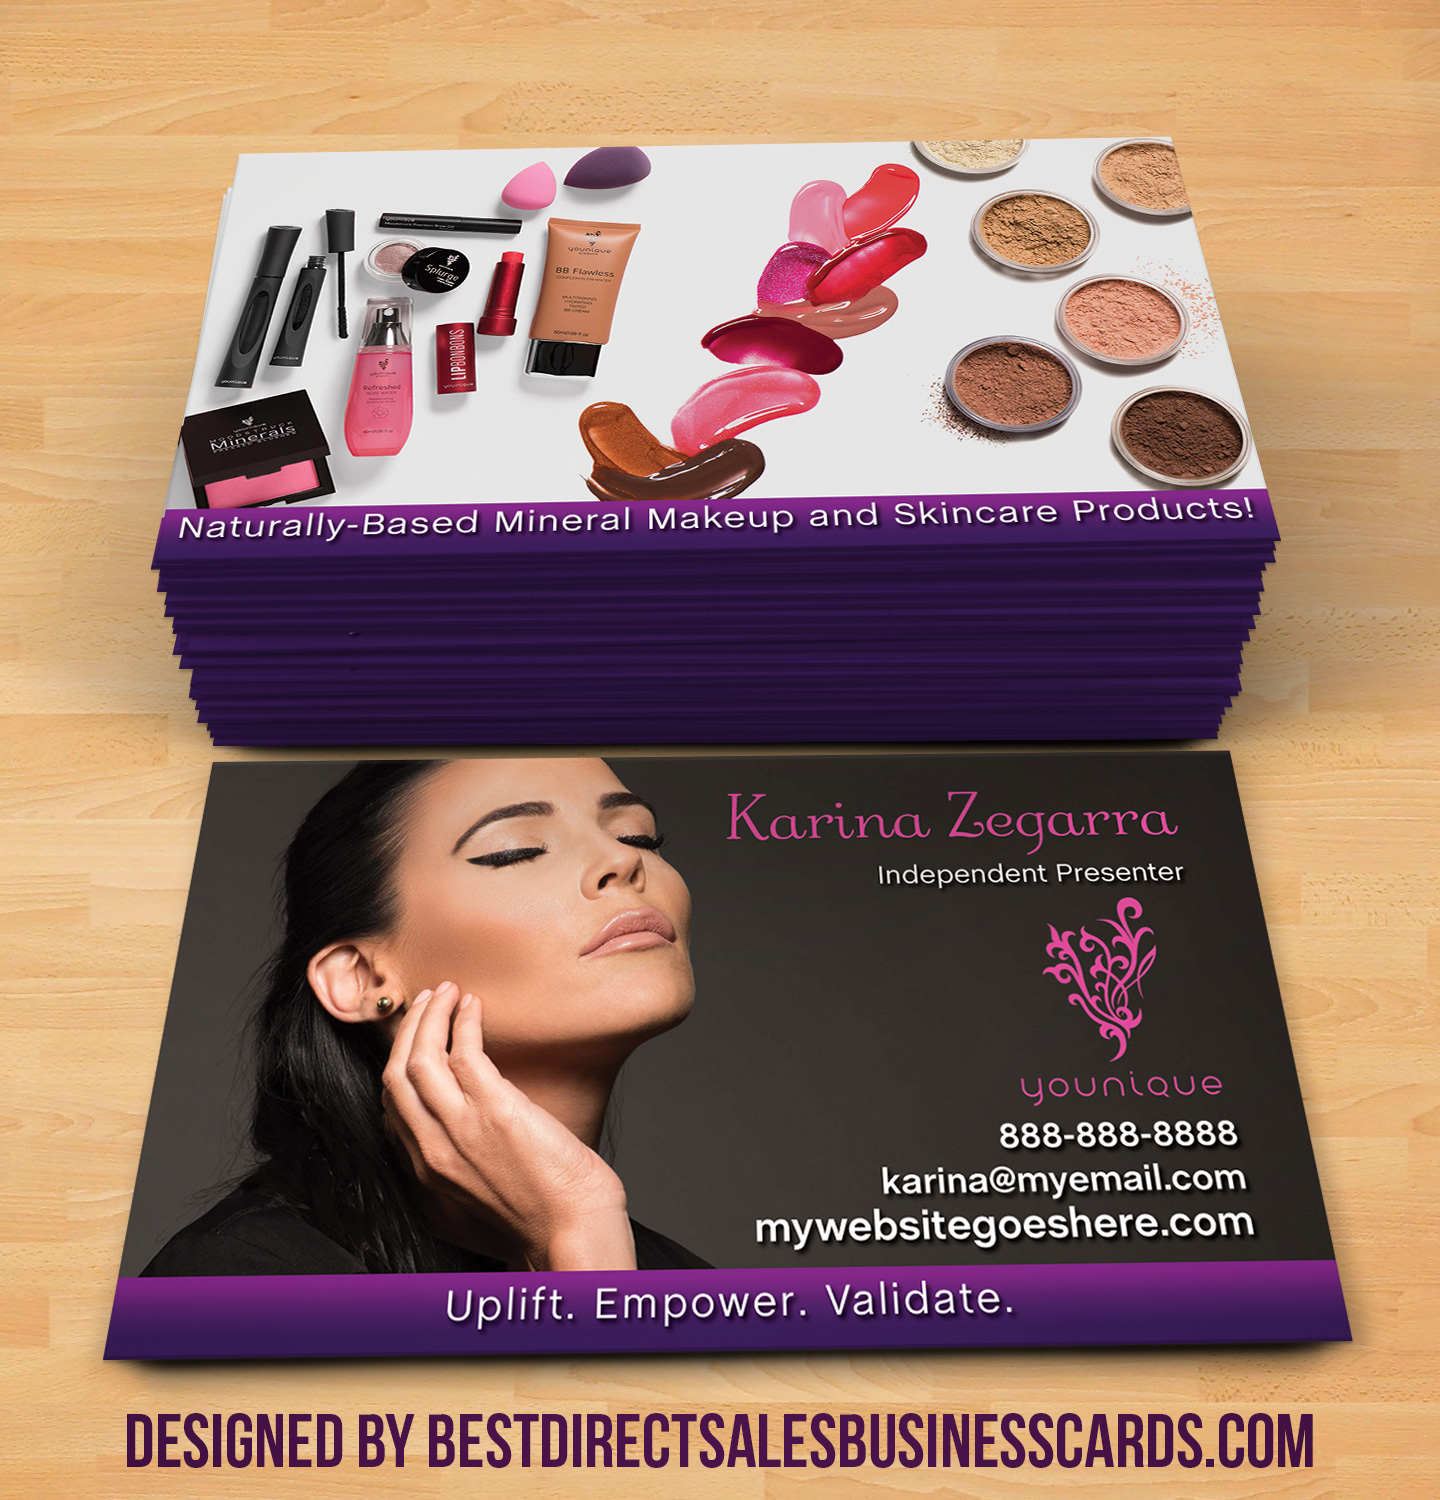 younique business cards 4 - Younique Business Cards